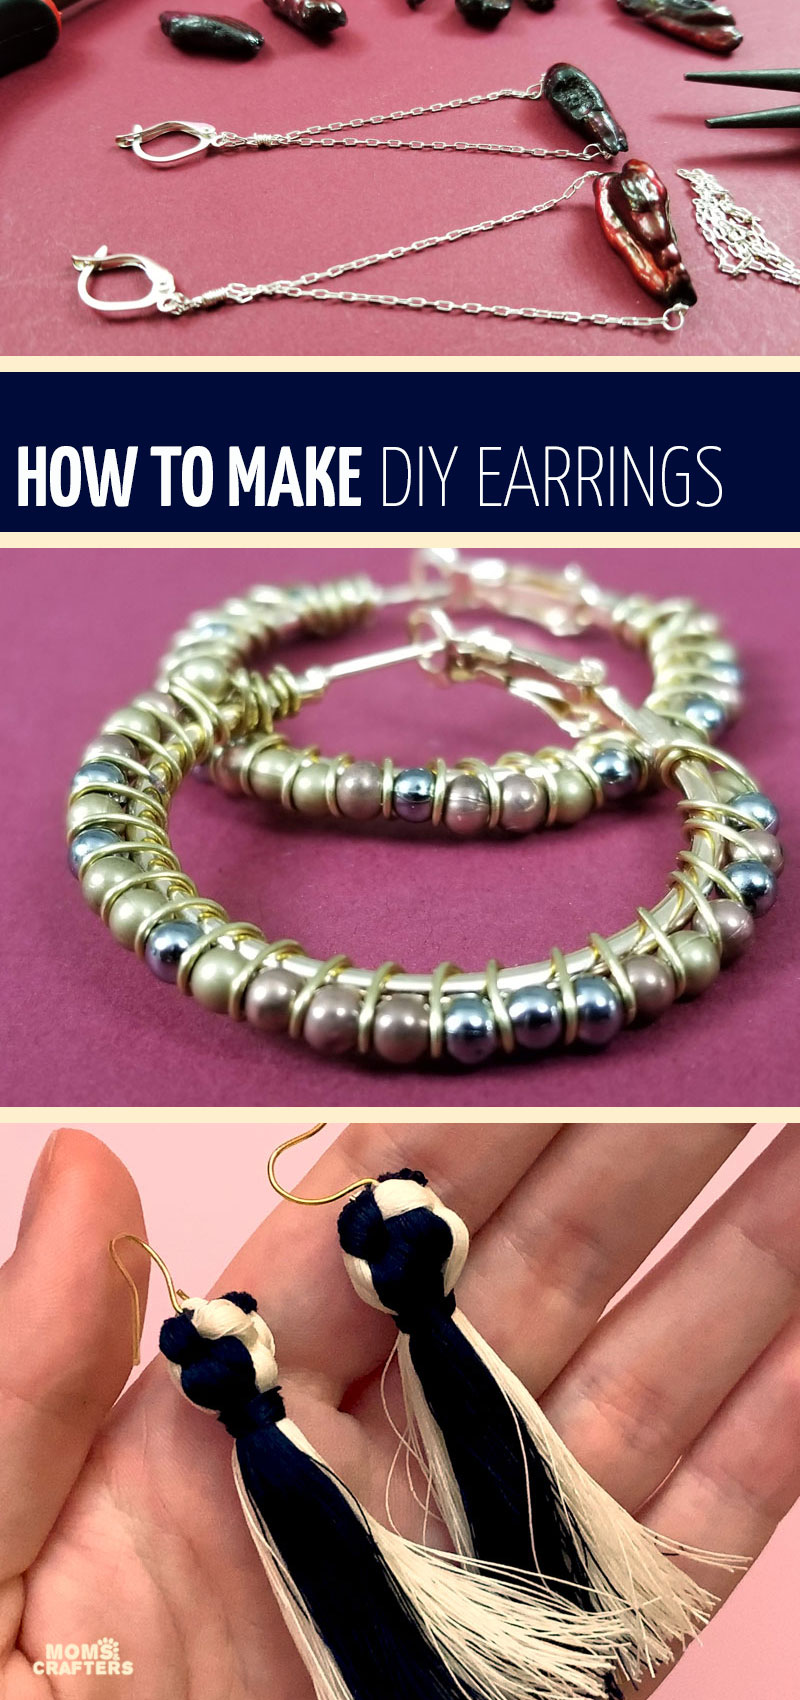 Make your own easy DIY earrings with these simple tutorials for teens and adults! These jewelry making basics include wire wrapped hoops, DIY stud earrings, tassel earrings, beaded ones too! You'll find so many ideas with beads, dangle, and even some for teens!